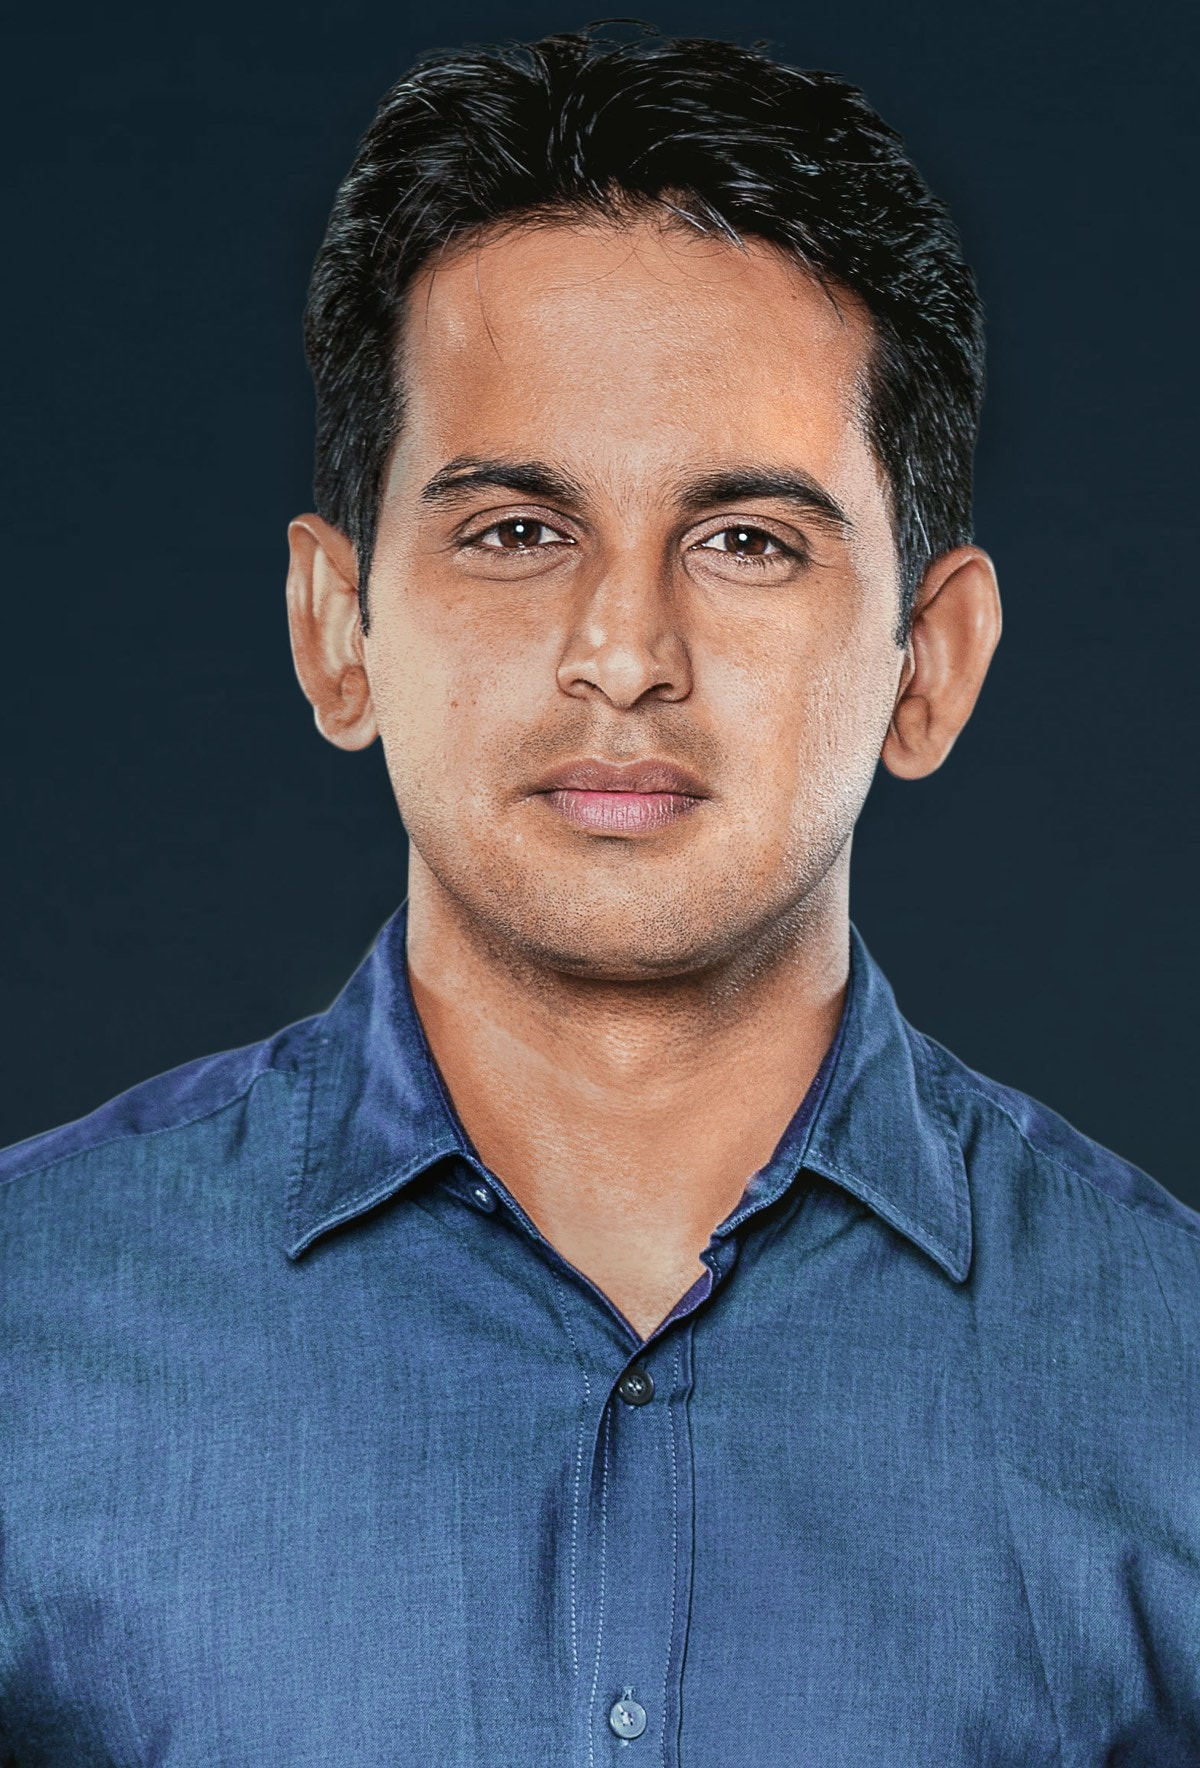 Arun Murthy, Chief Product Officer